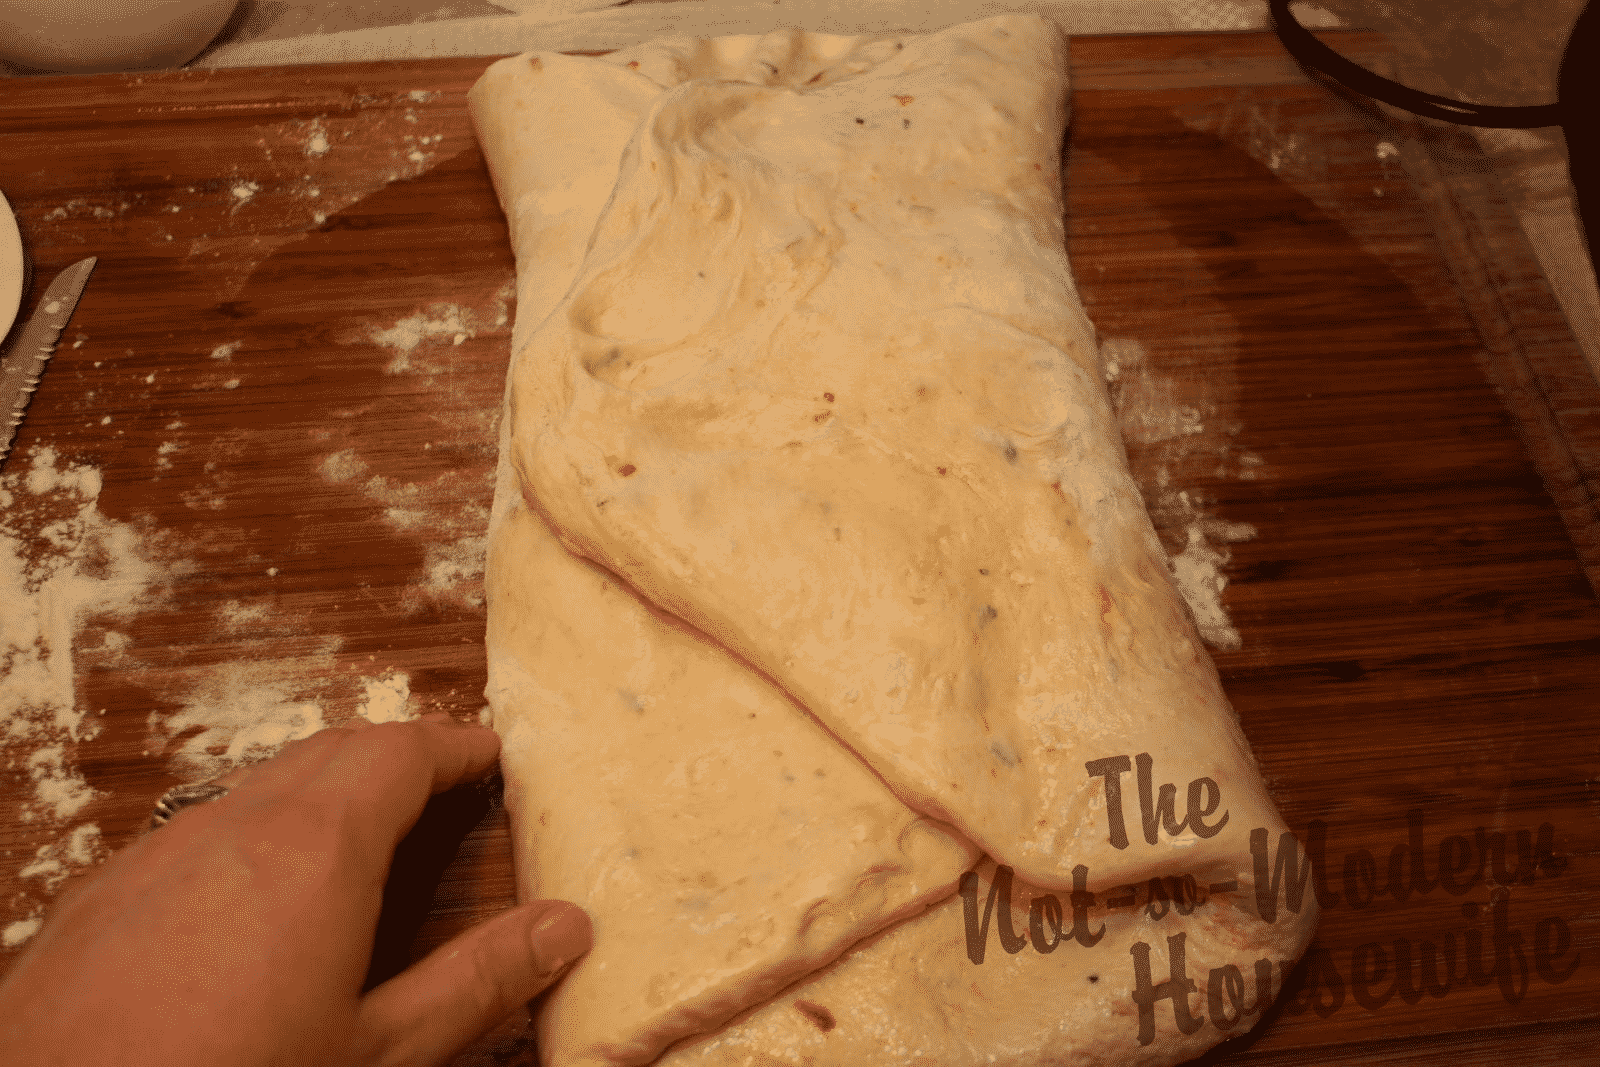 folding bread dough